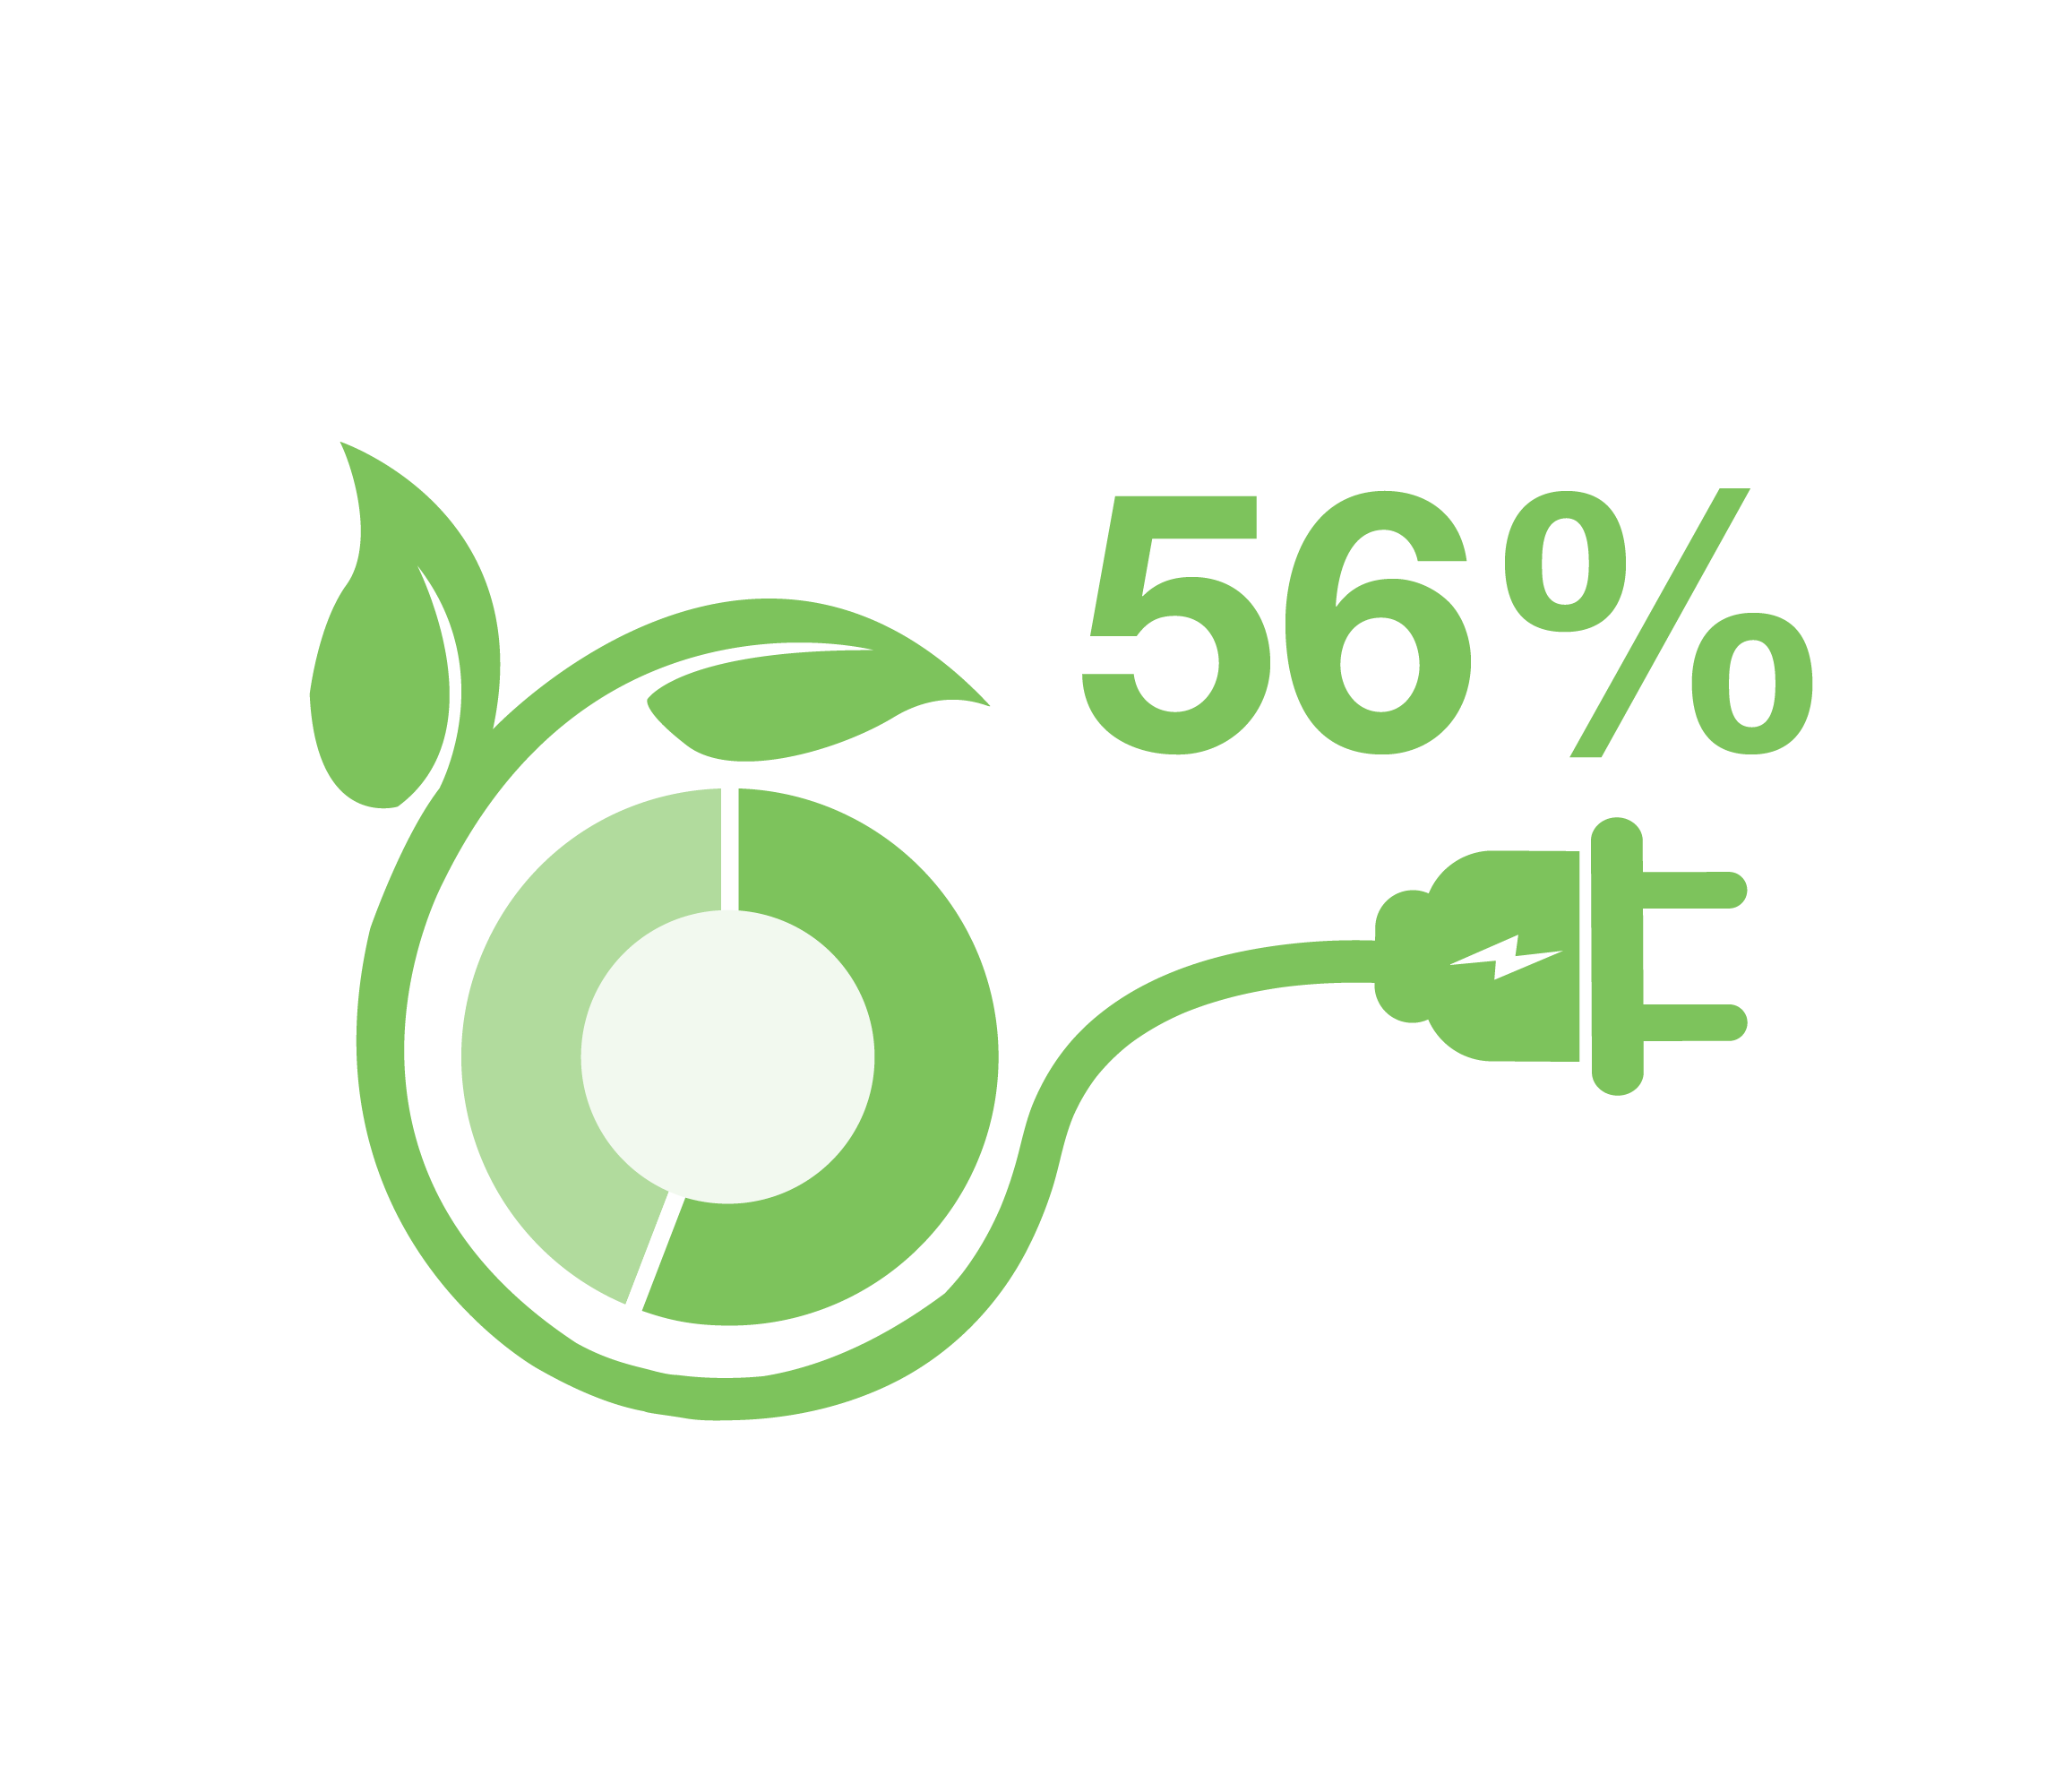 Illustration: 56%Green Electricity